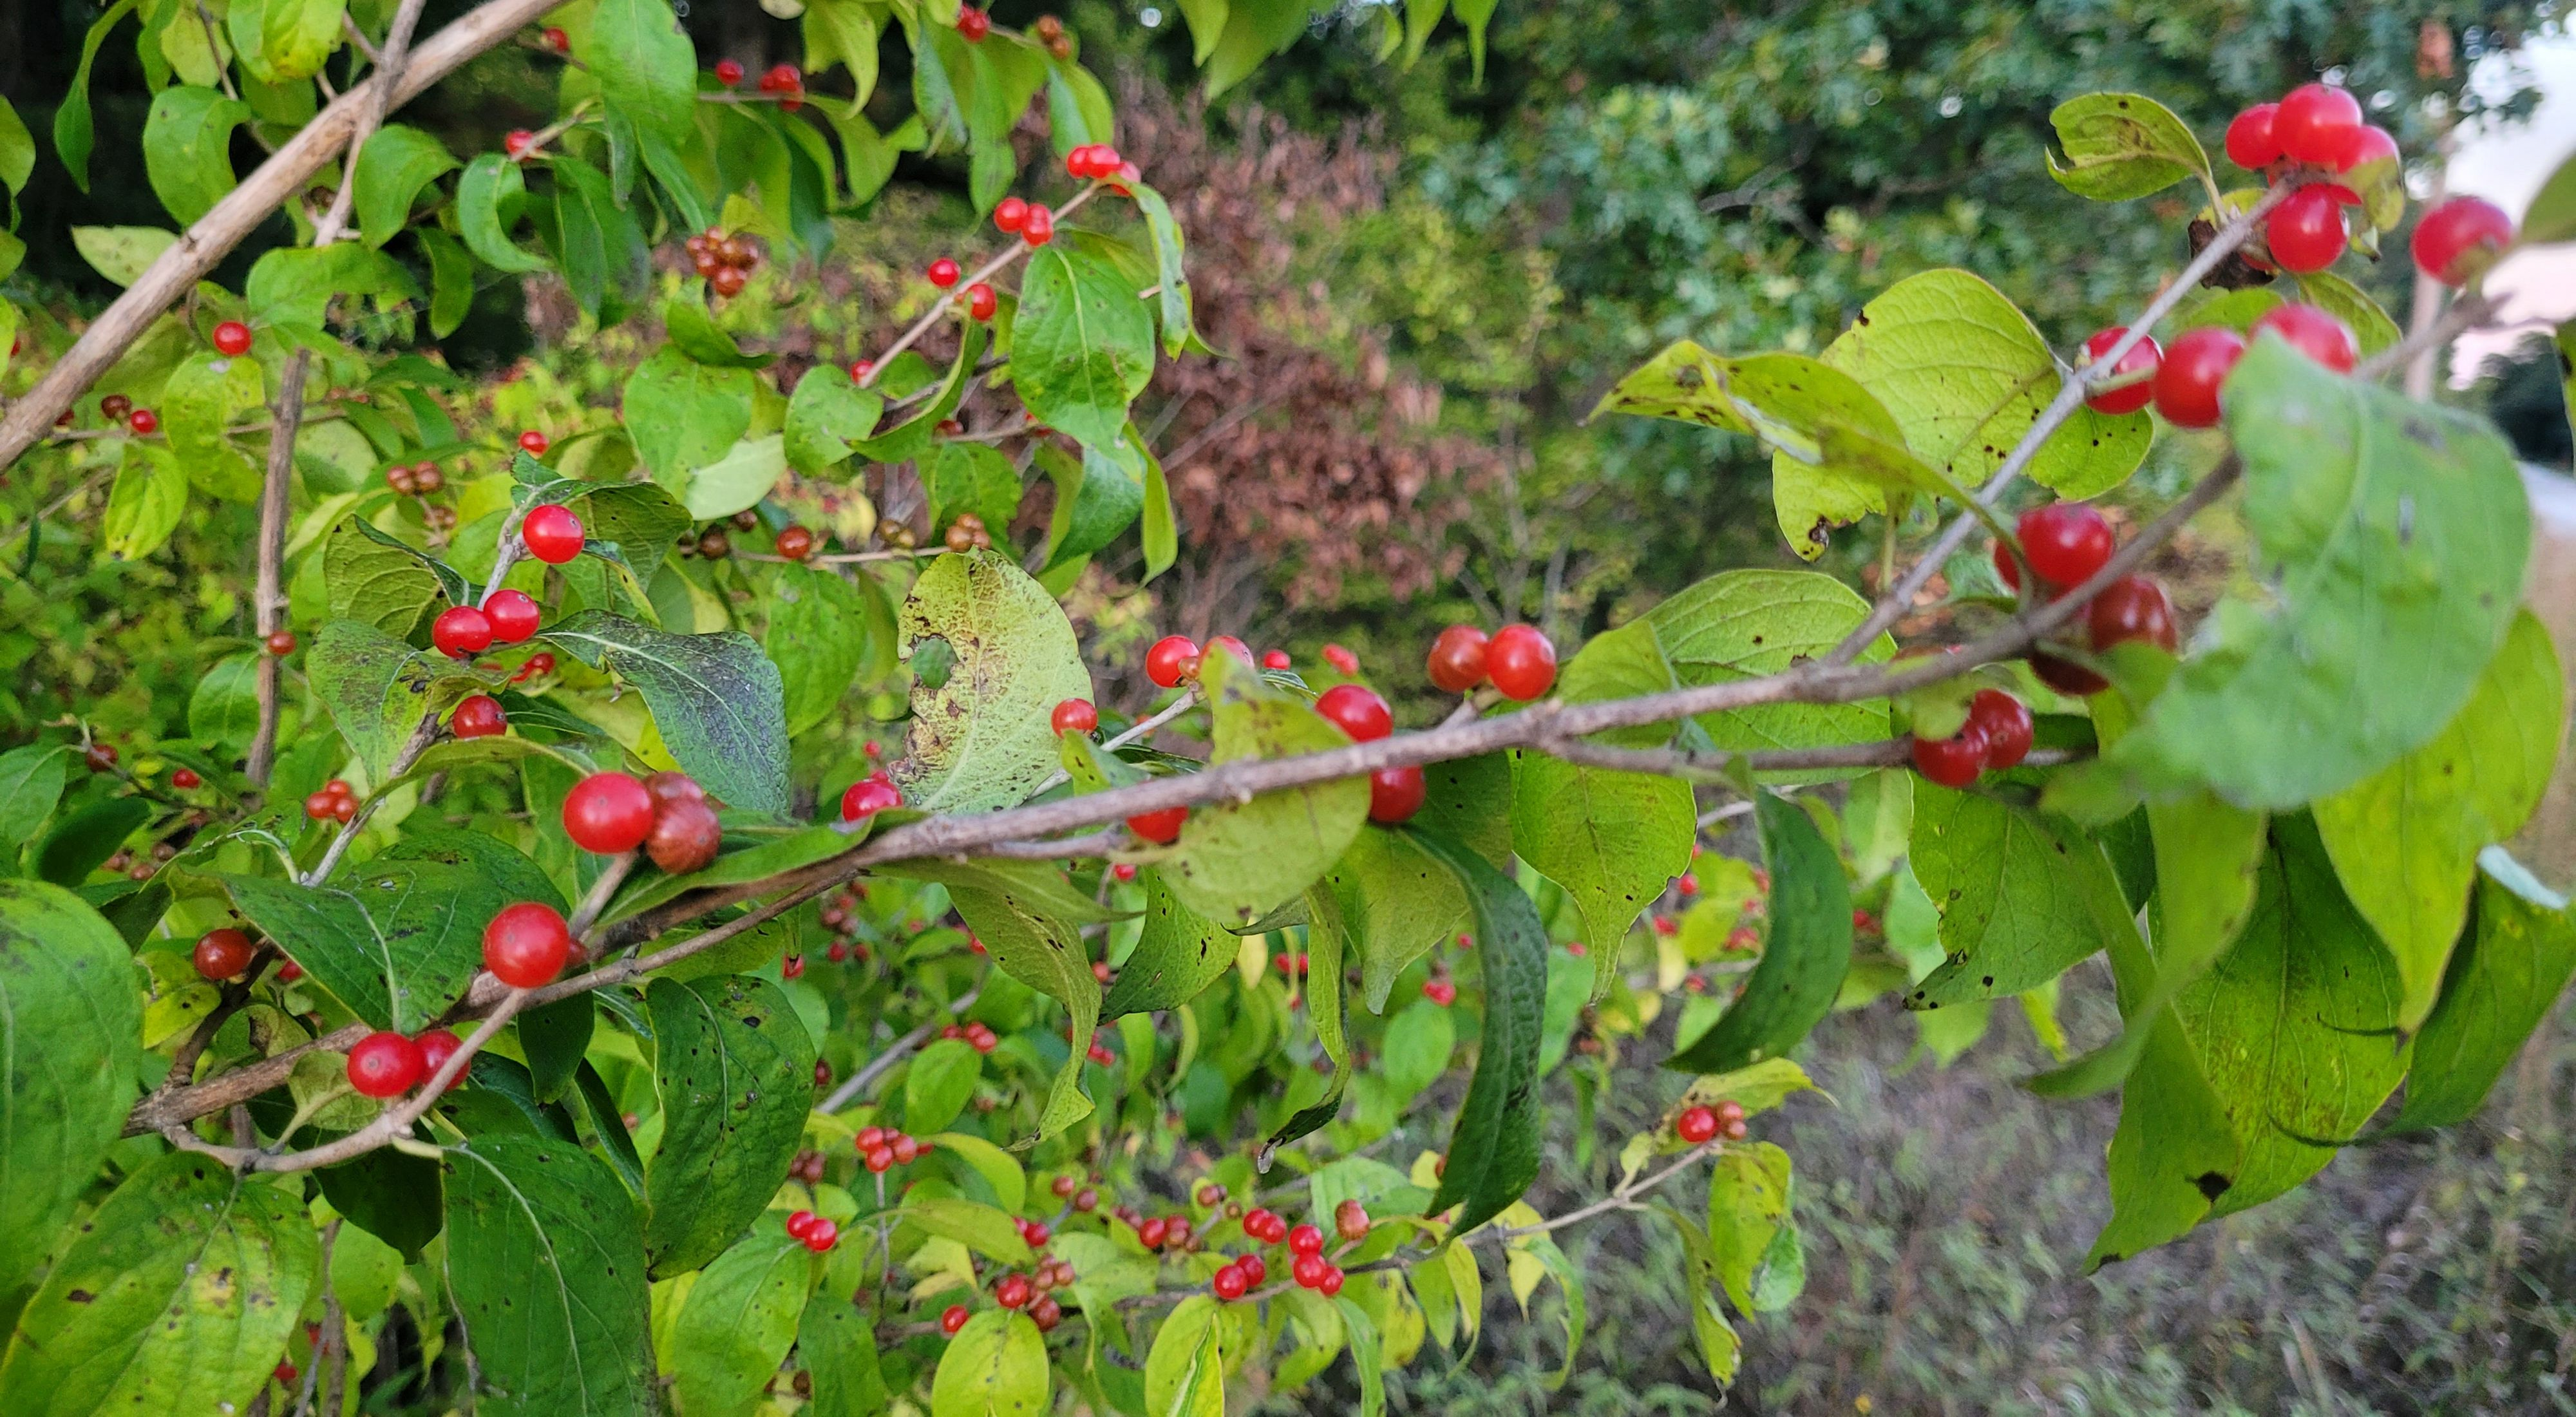 Bright green-leaved bush with small round red berries.